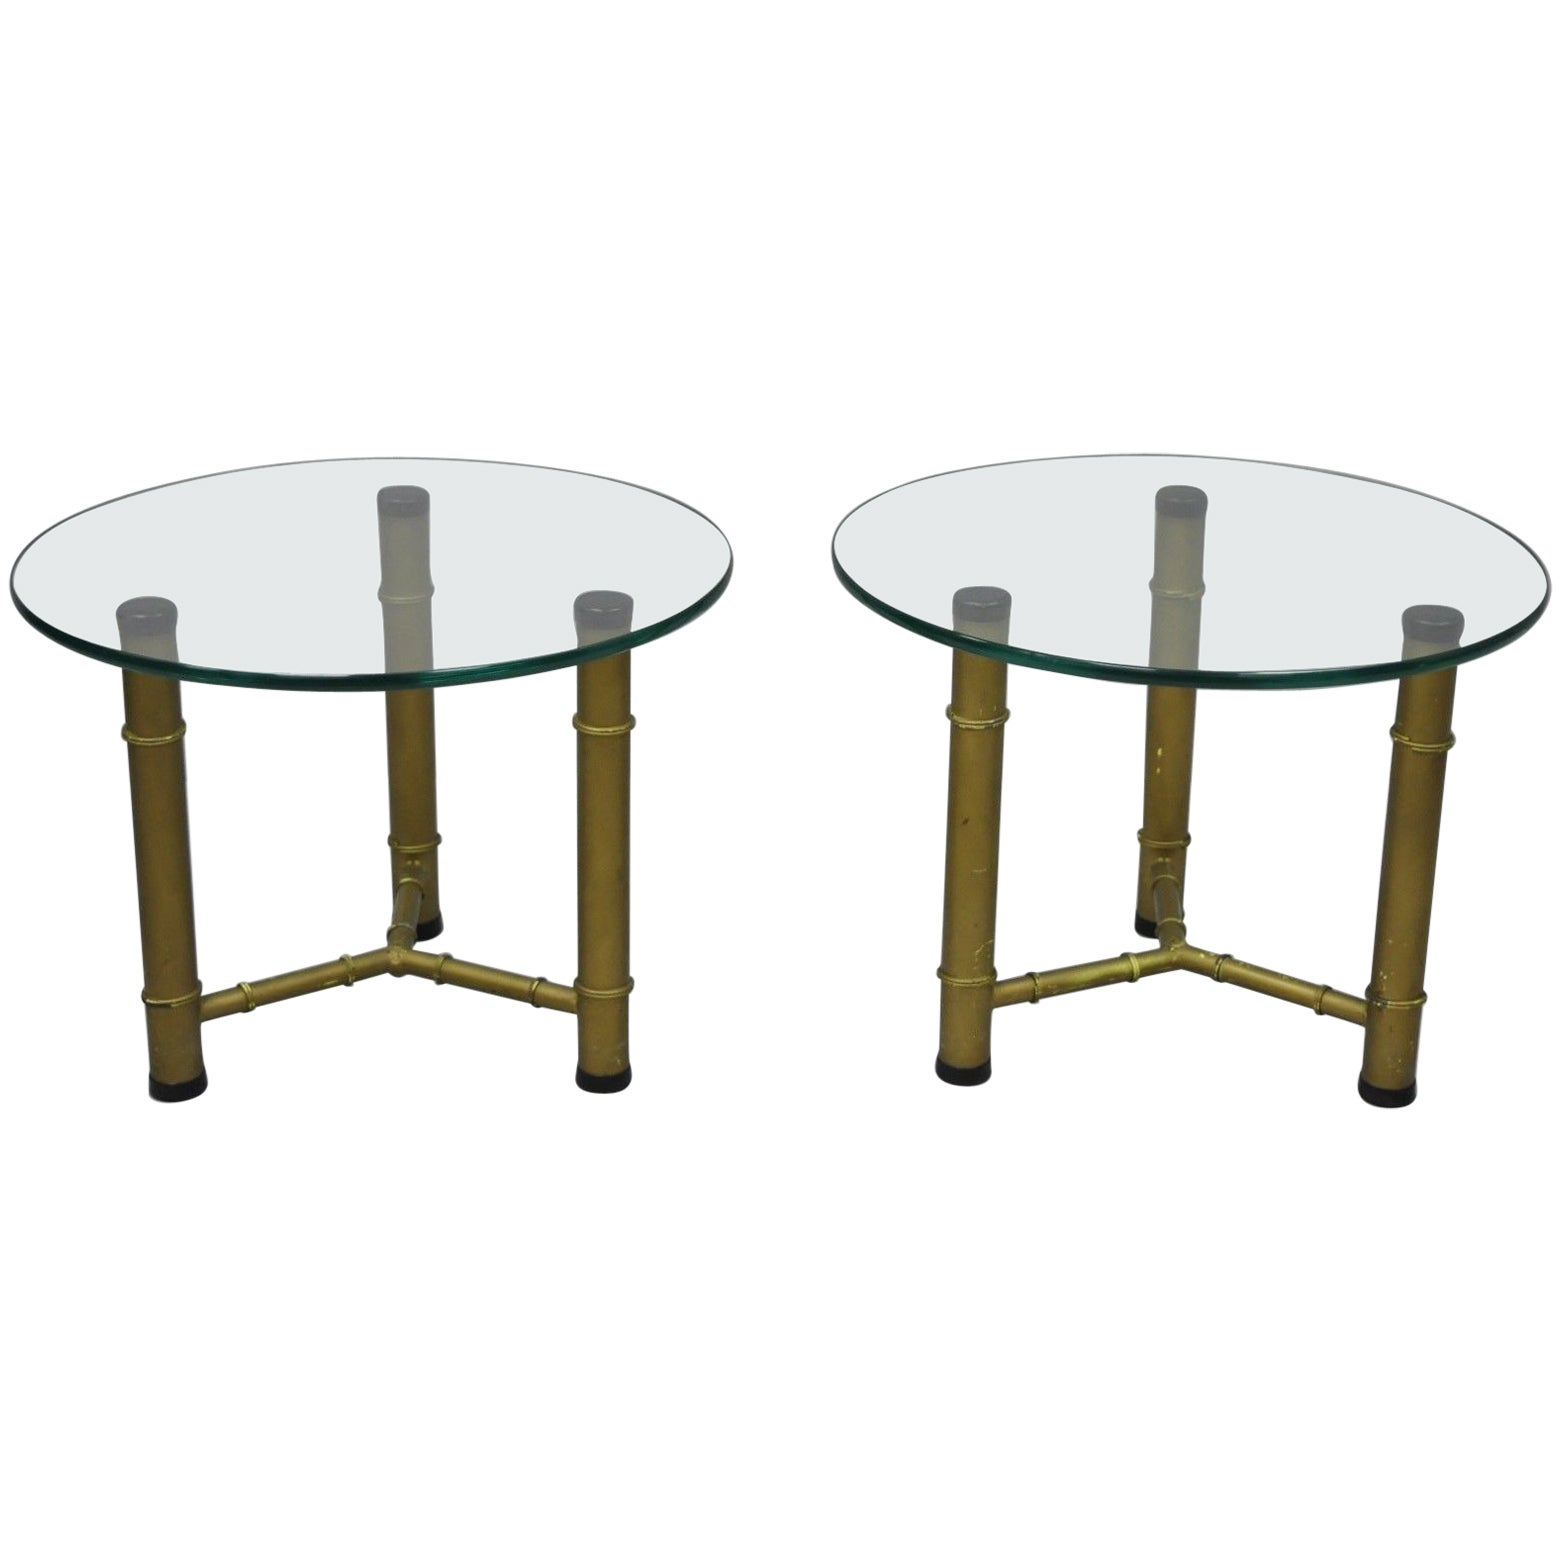 Metal Glass End Tables Pair Of Metal Faux Bamboo Round Glass Top Low Side End Tables Hollywood Regency